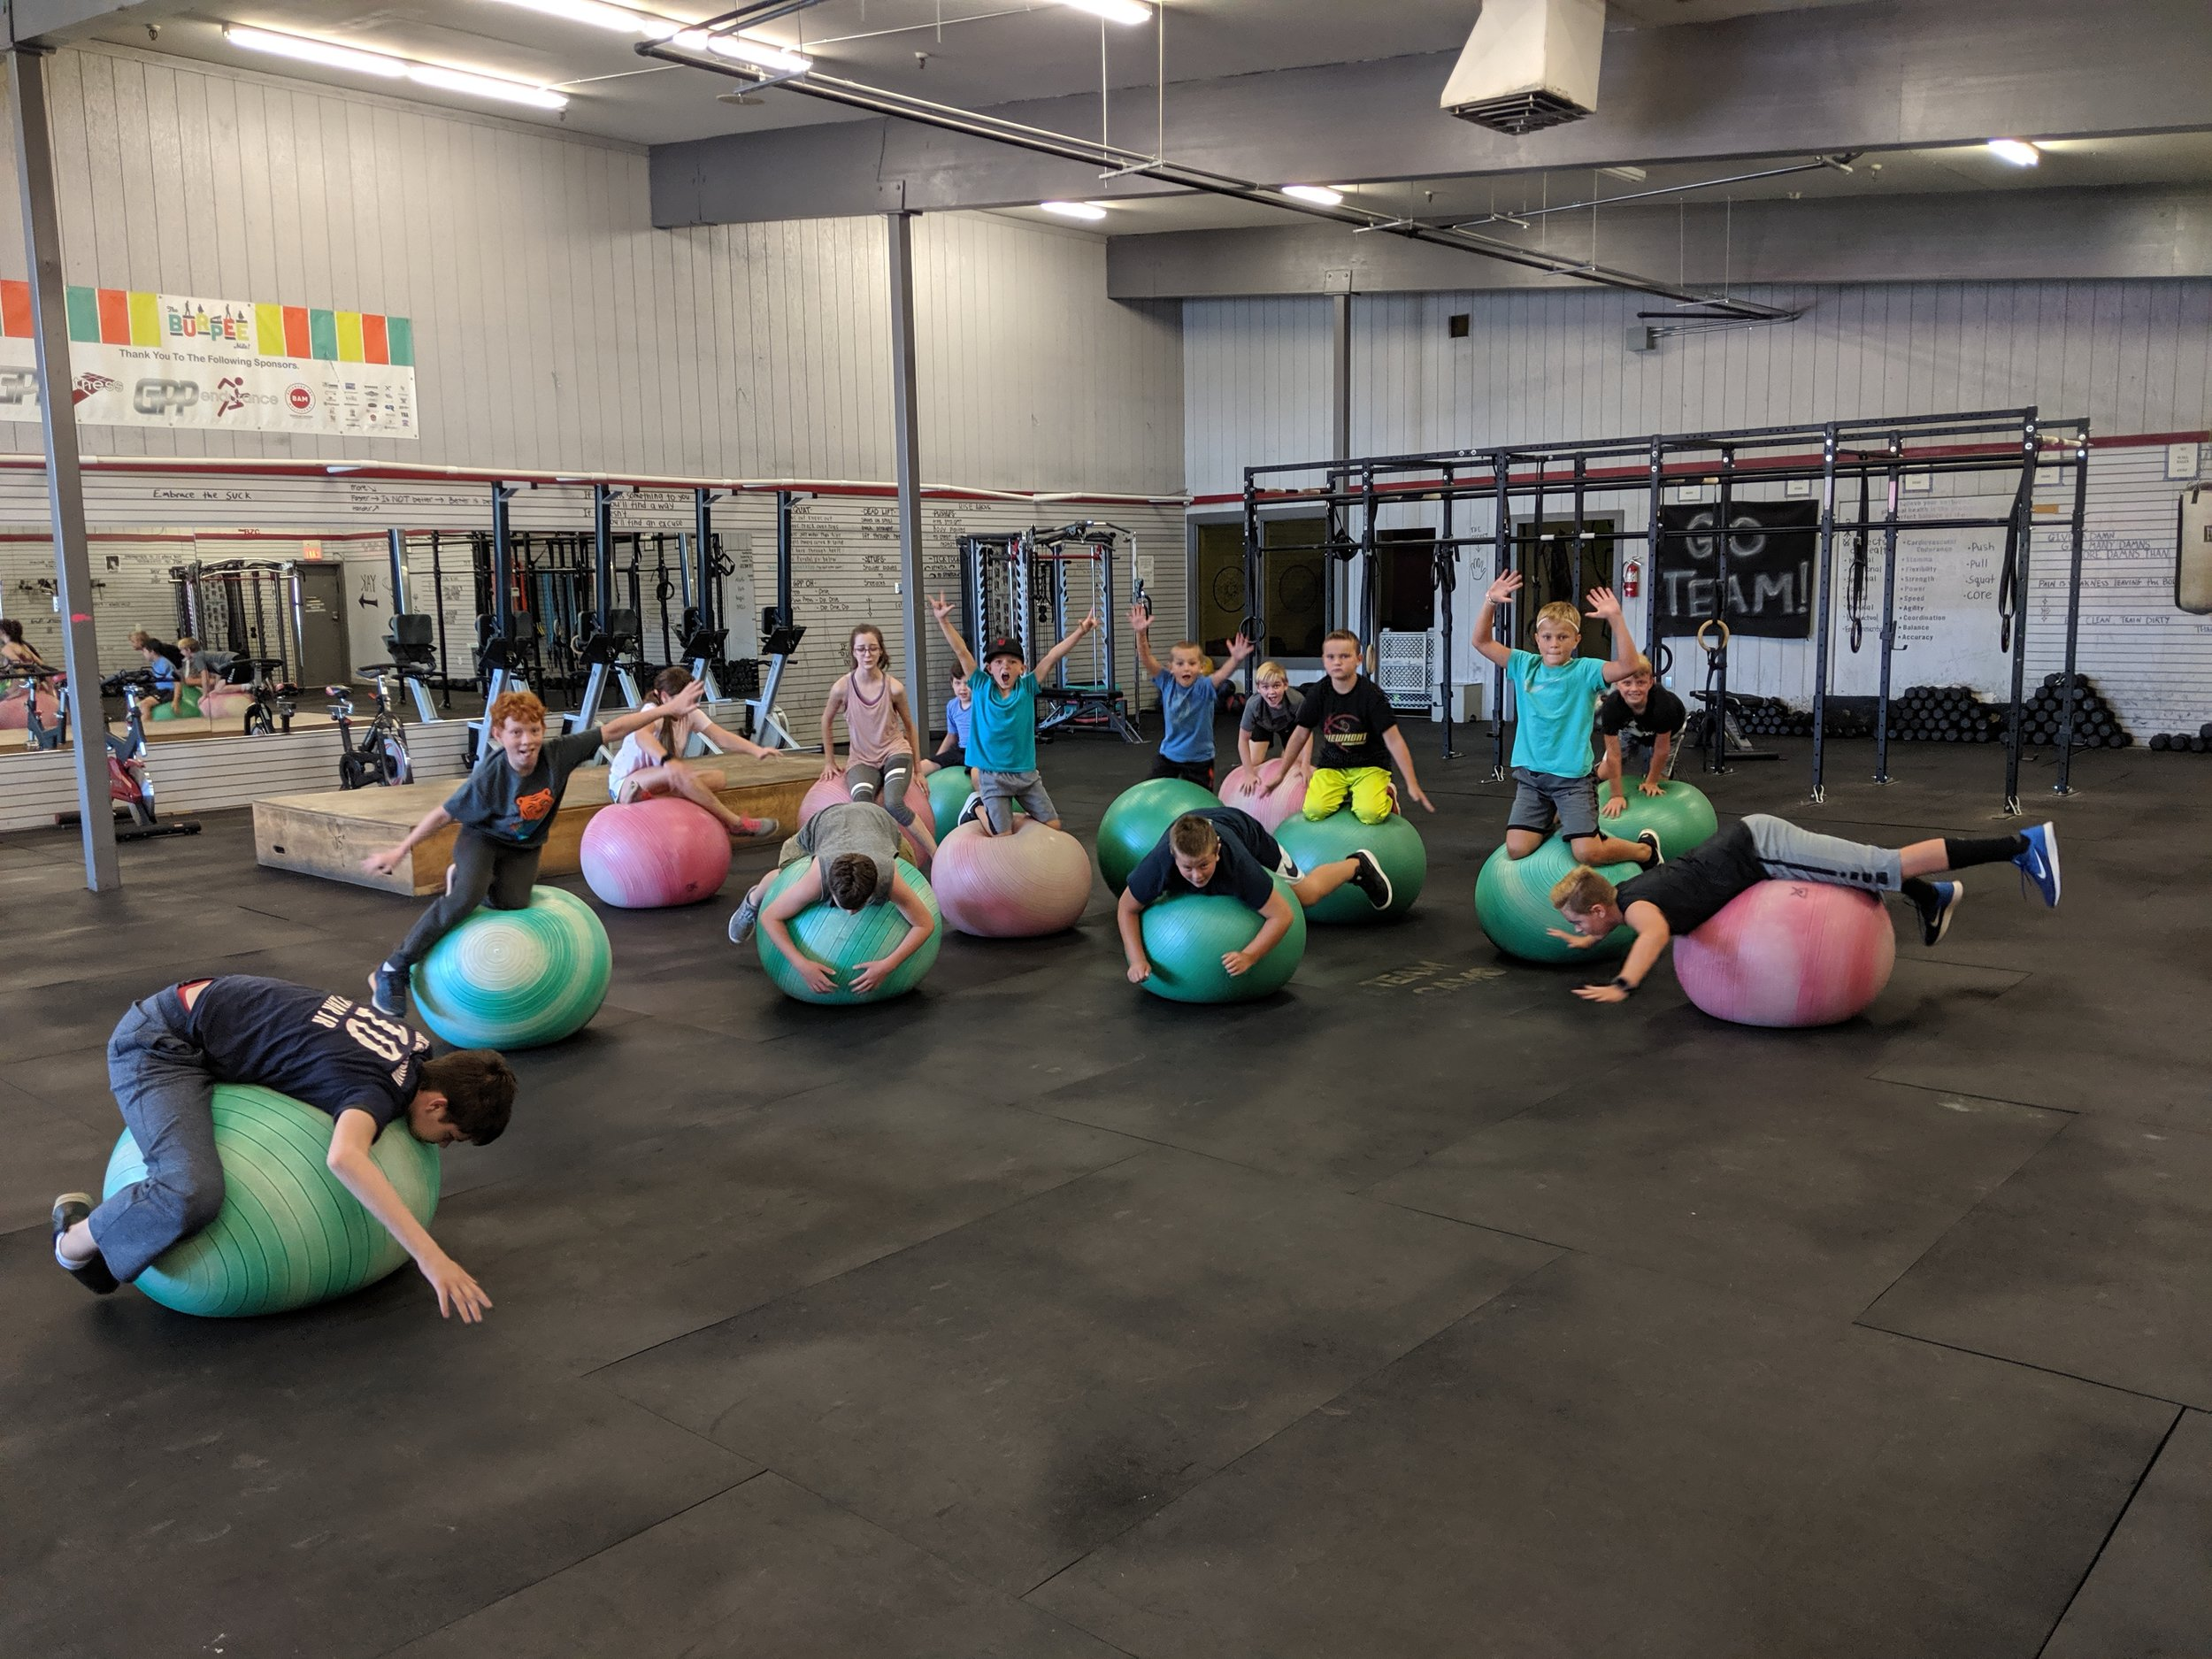 We decided to continue our Kid's Fitness Classes throughout the school year! We will hold 2 different classes after school for 2 different age groups in 6 week blocks. Same amazing price of $55.00 per kid. The next block will start August 27th!